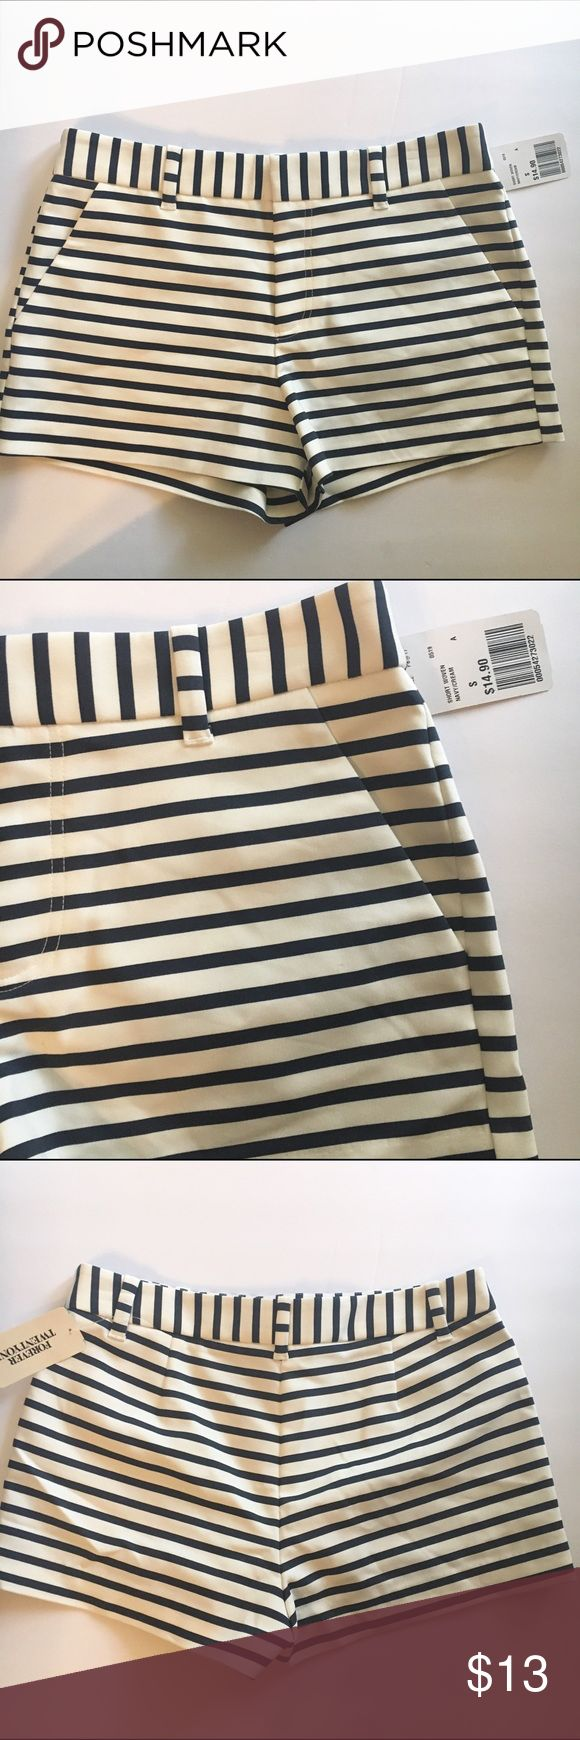 Forever 21 Nautical Striped Shorts NWT Very cute pair of shorts! Have the nautical look to them! Navy and white stripes. Forever 21 Shorts